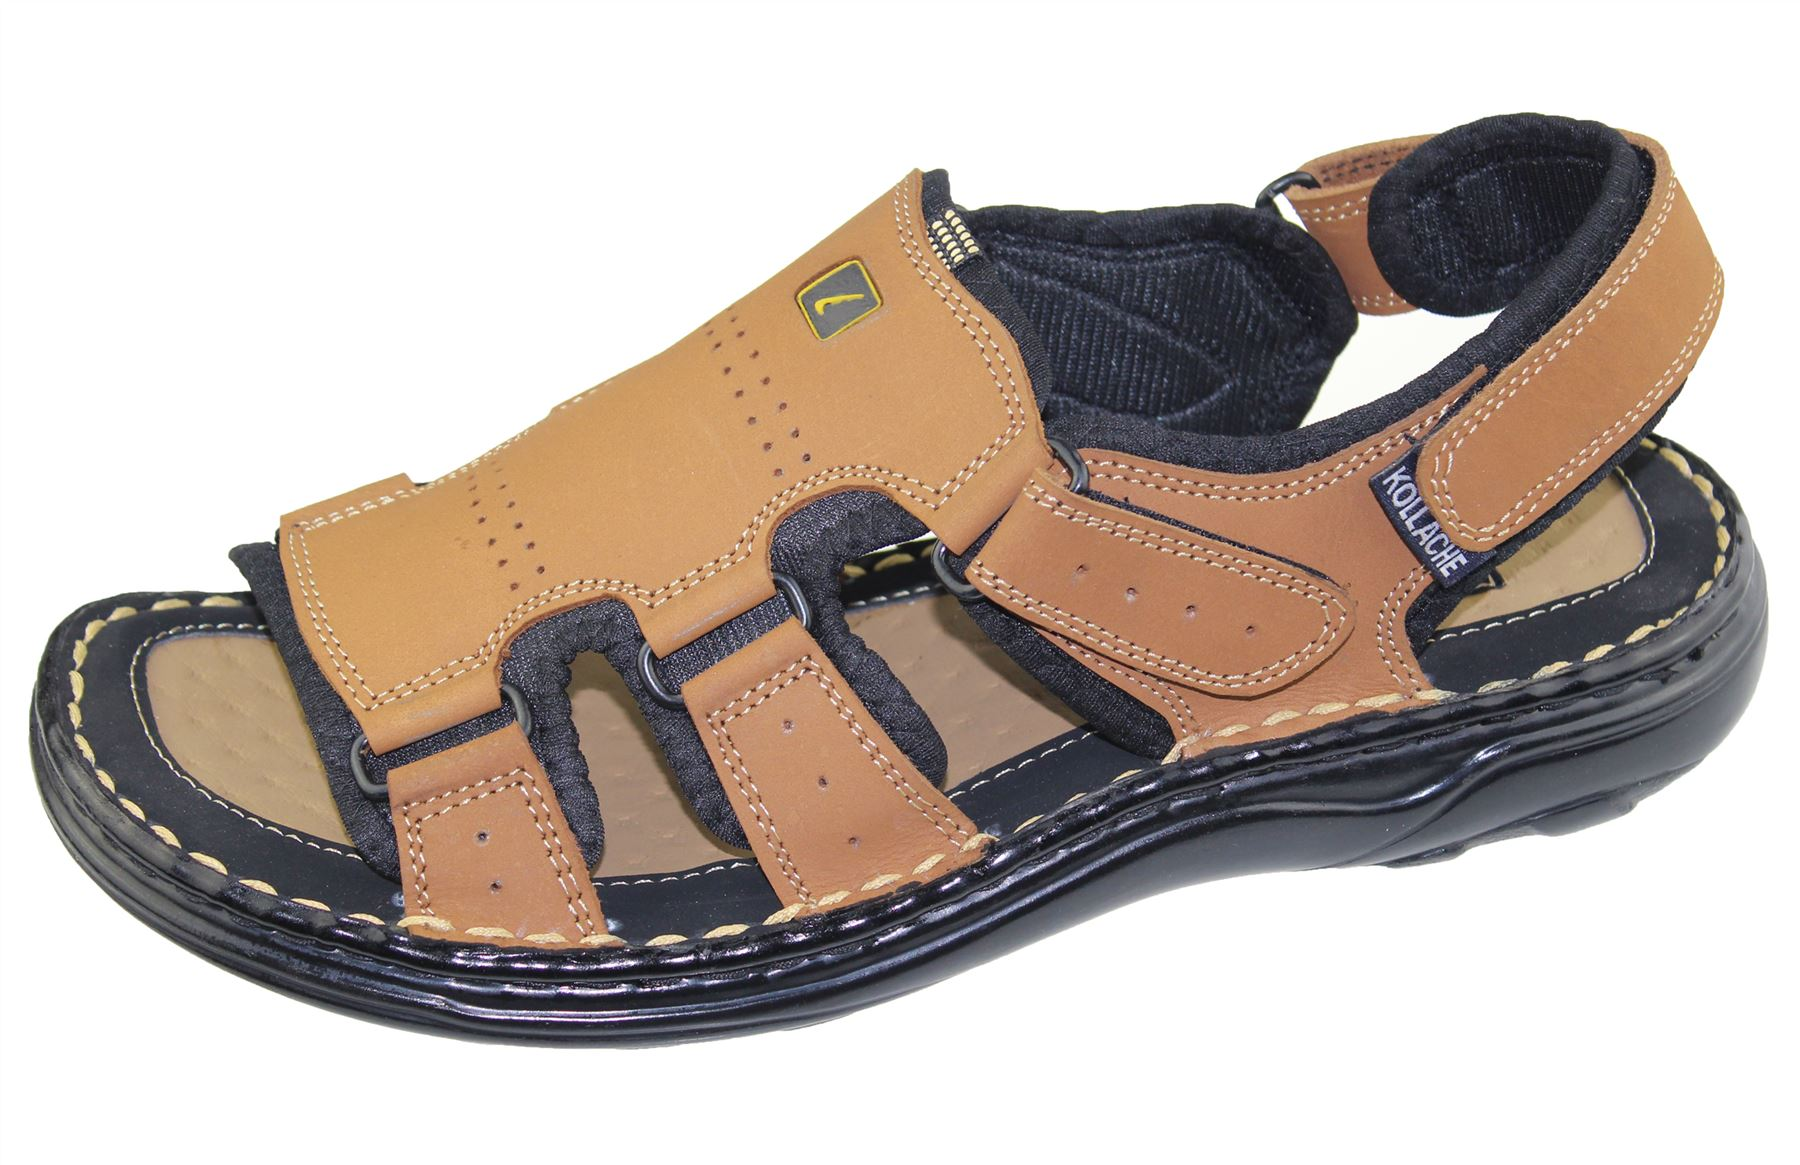 Mens Walking Fashion Sports Sandal Beach Buckle Summer Casual Slipper Shoes Size